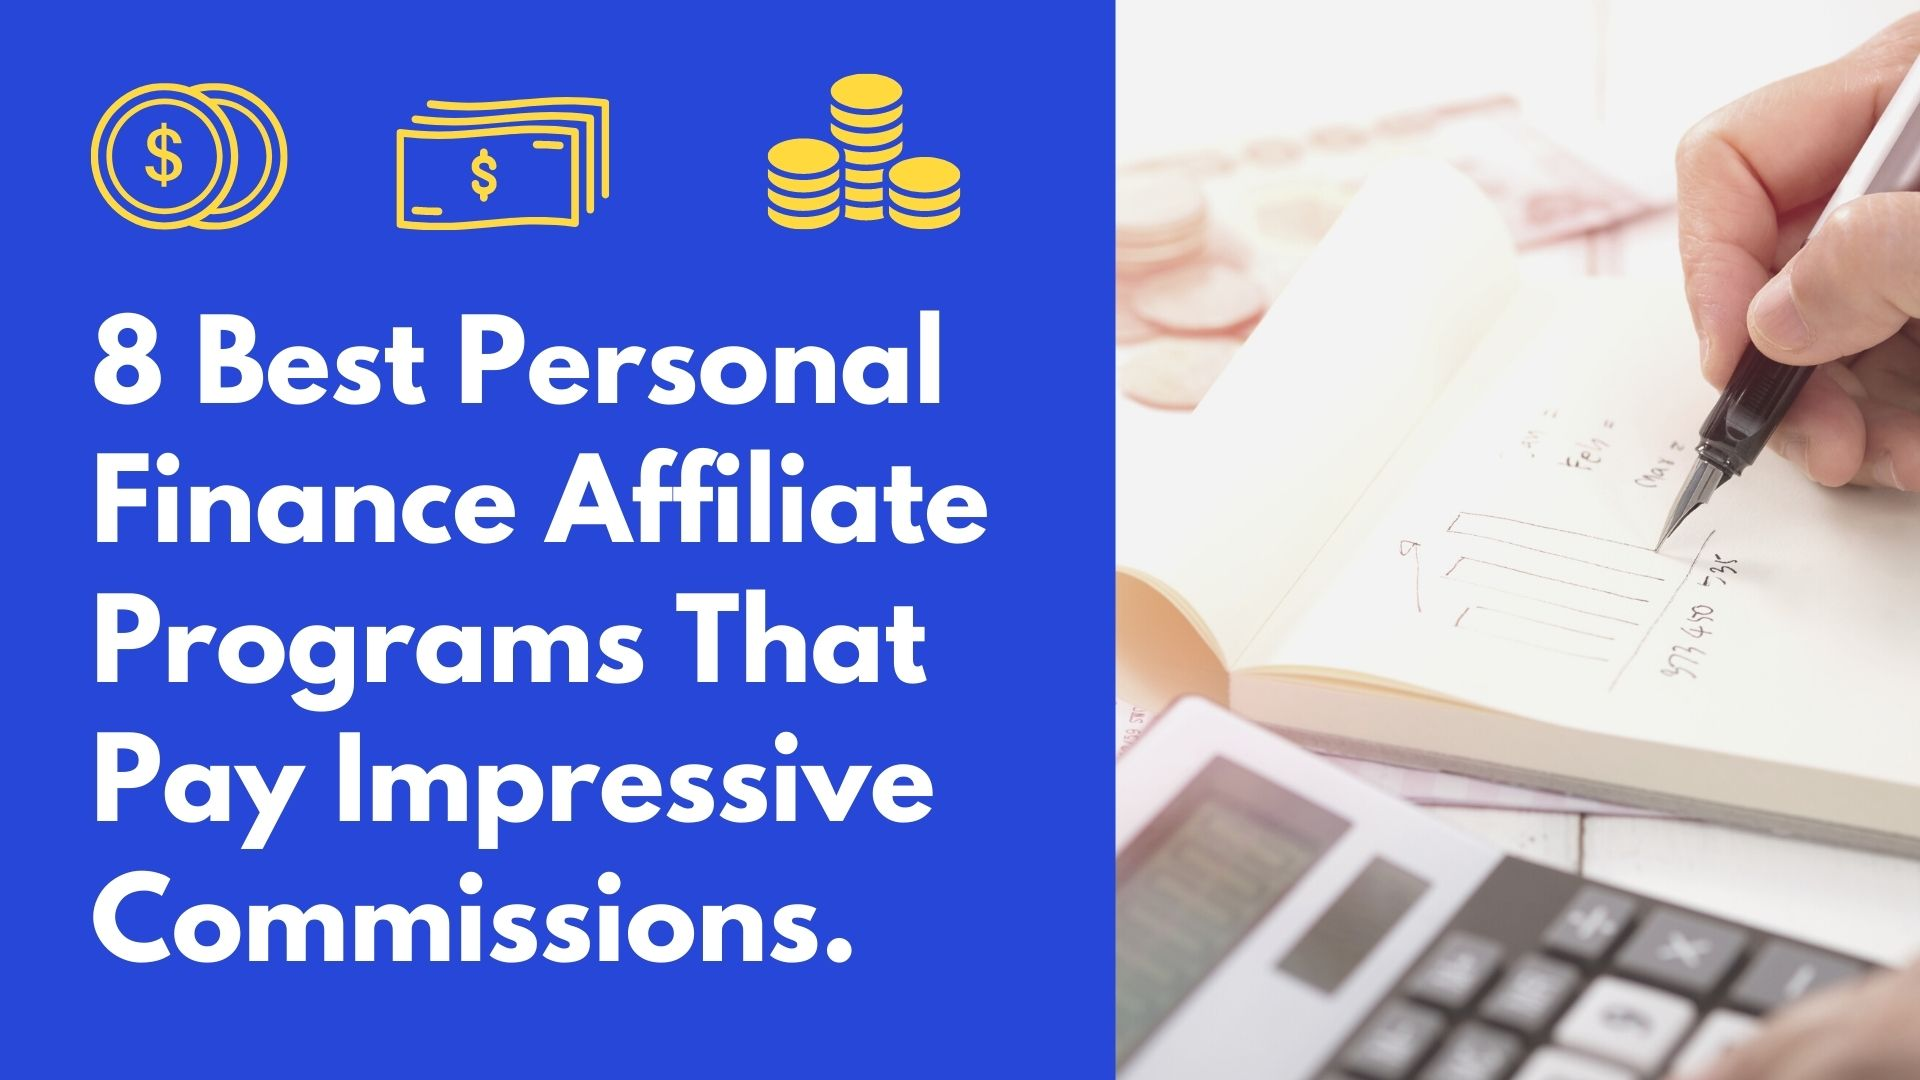 8 Best Personal Finance Affiliate Programs (With Crazy Commissions)